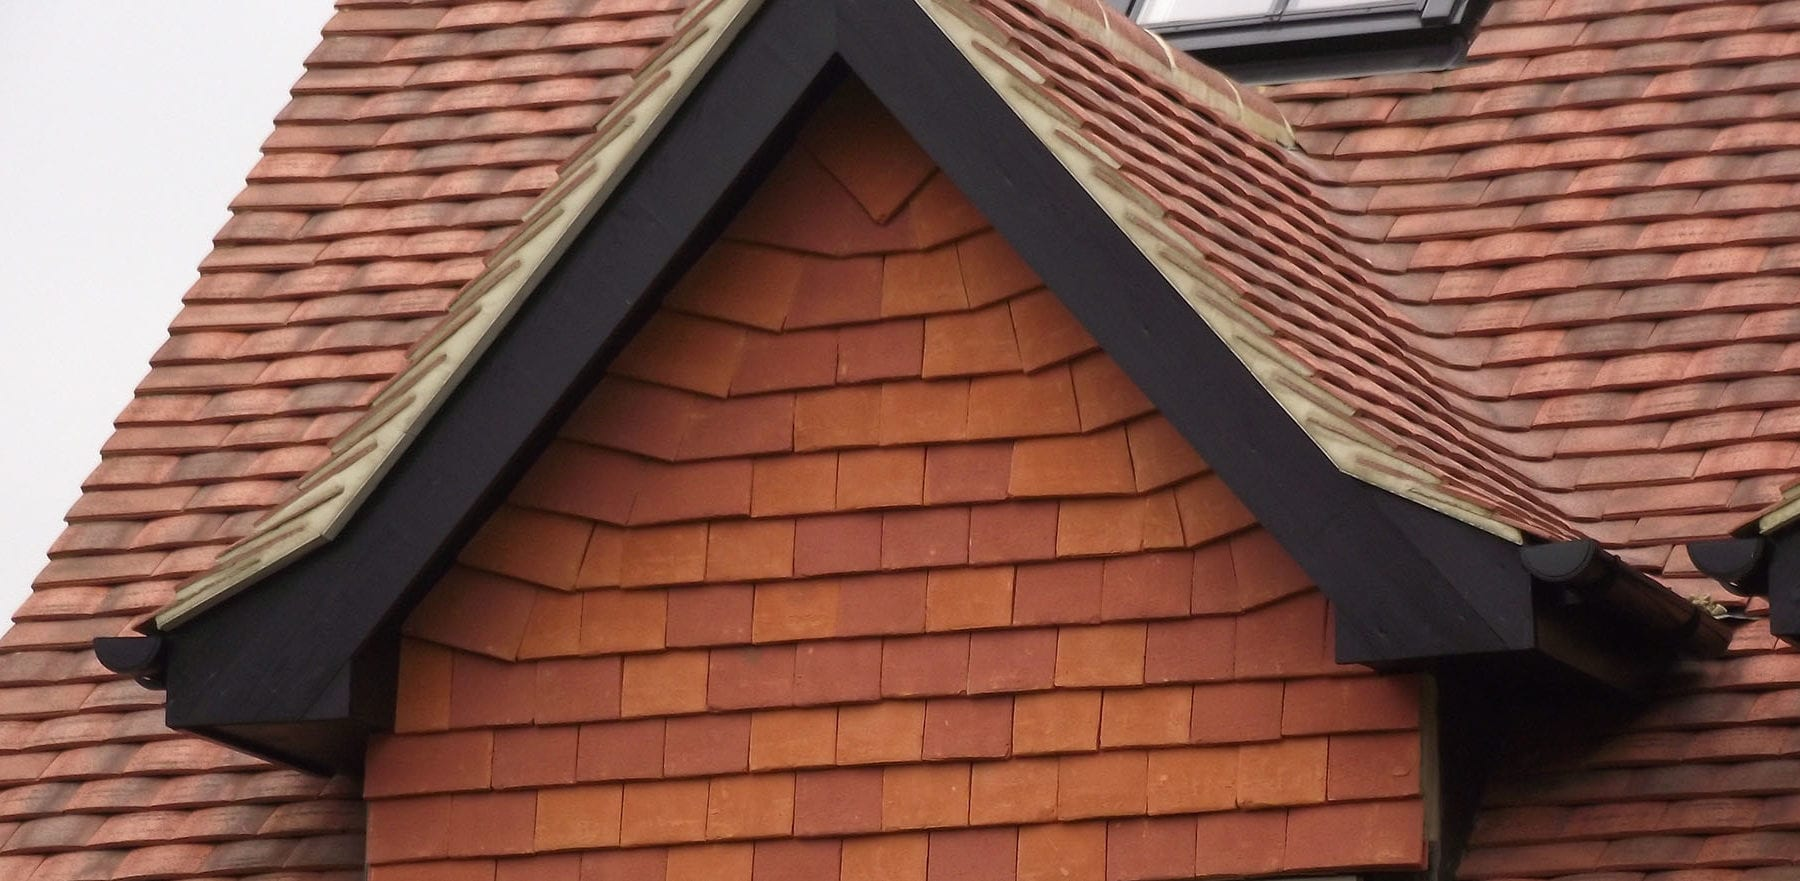 Lifestiles - Handcrafted Orange Clay Roof Tiles - Liss, England 6